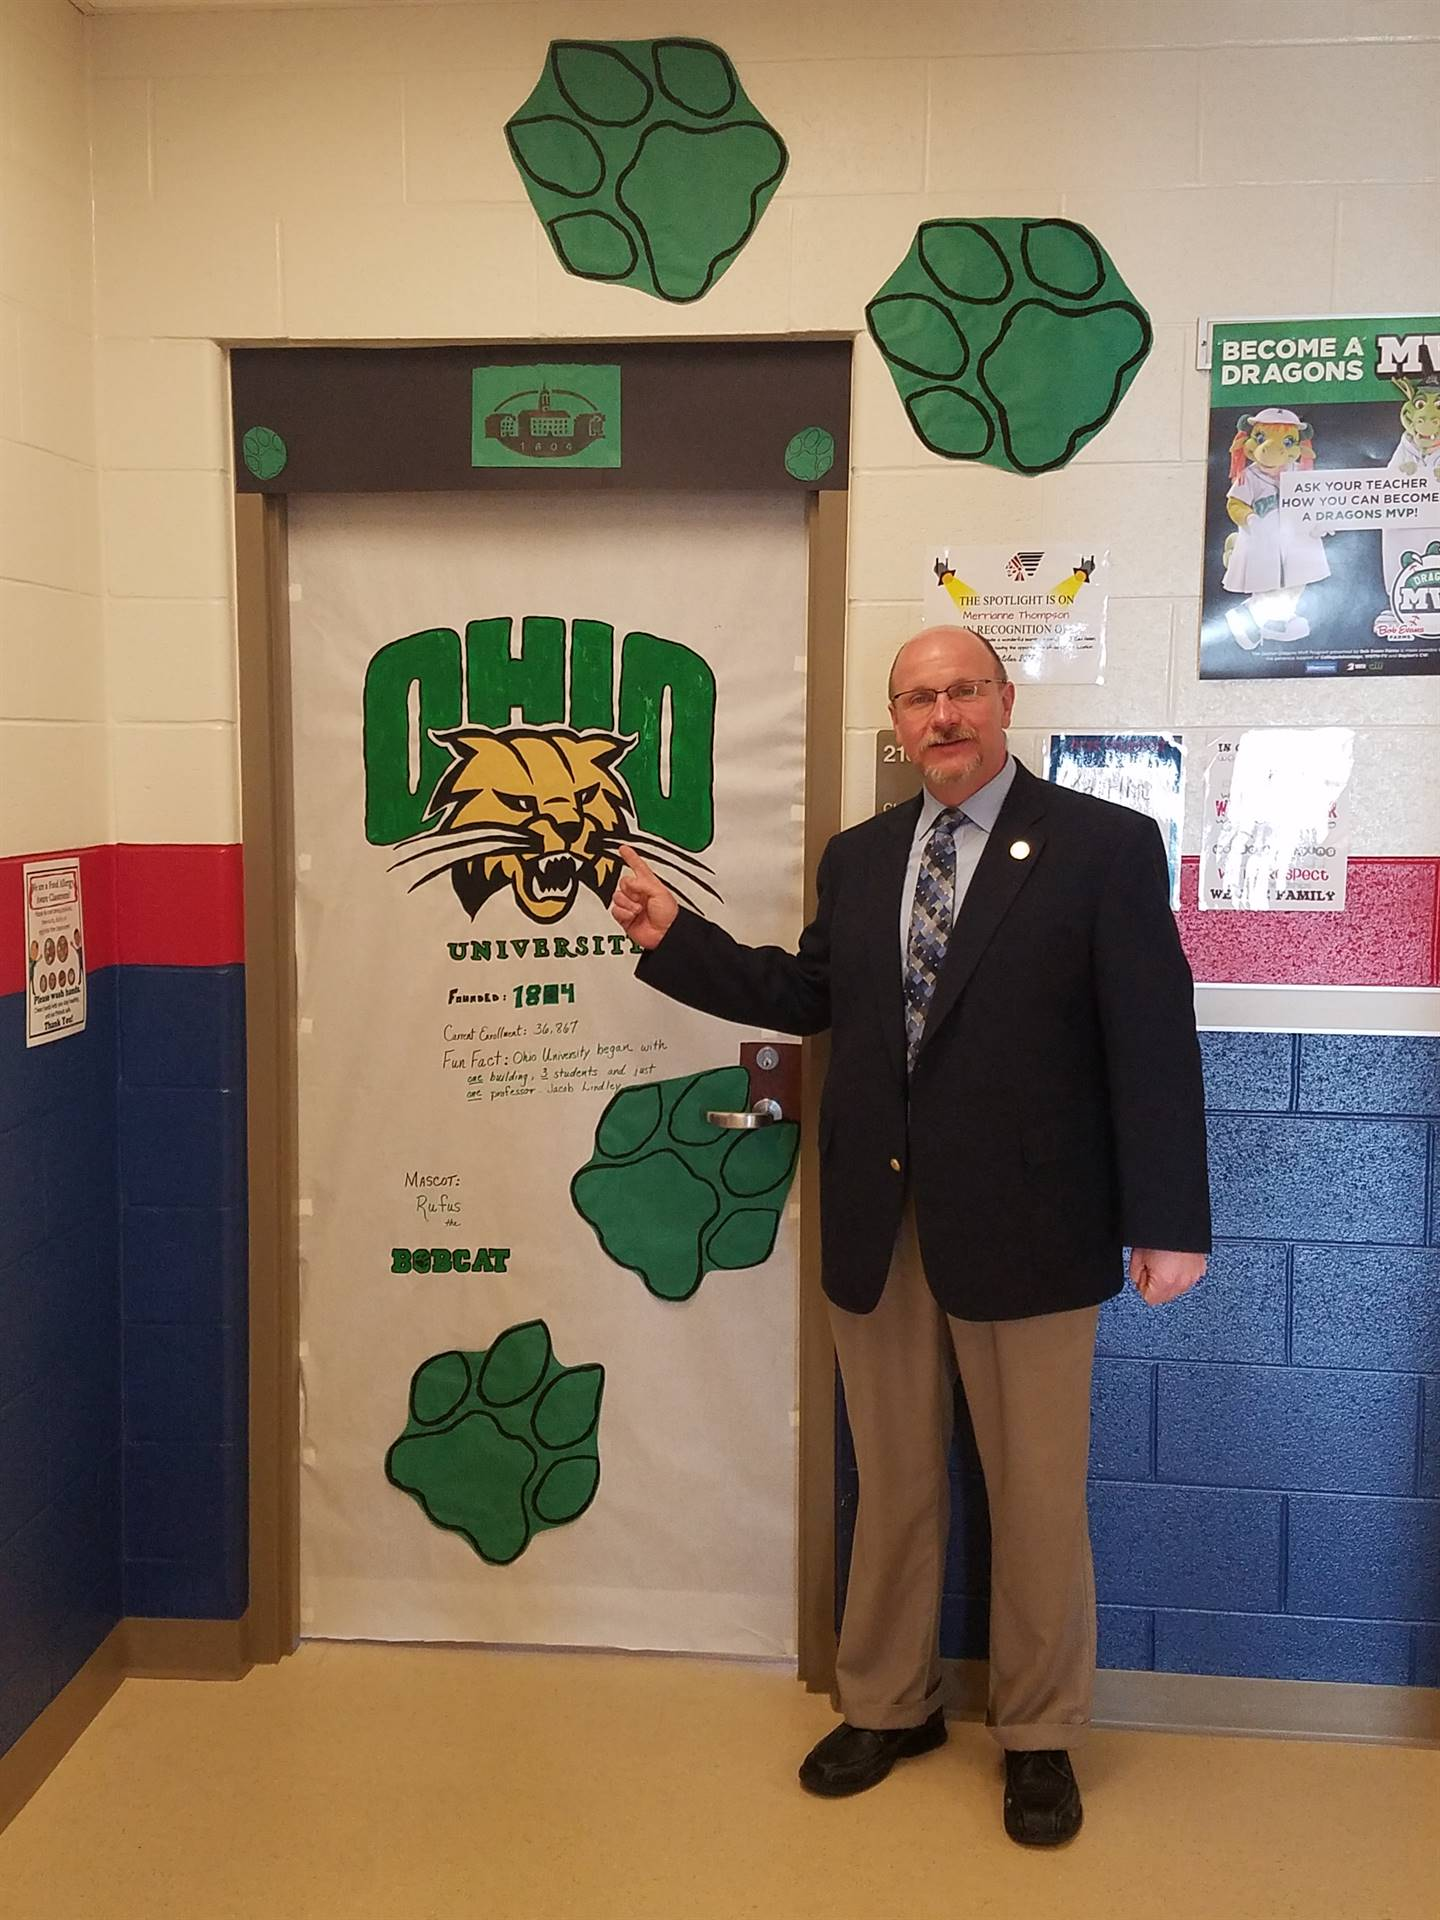 Mr. Thompson showing his love for Ohio University